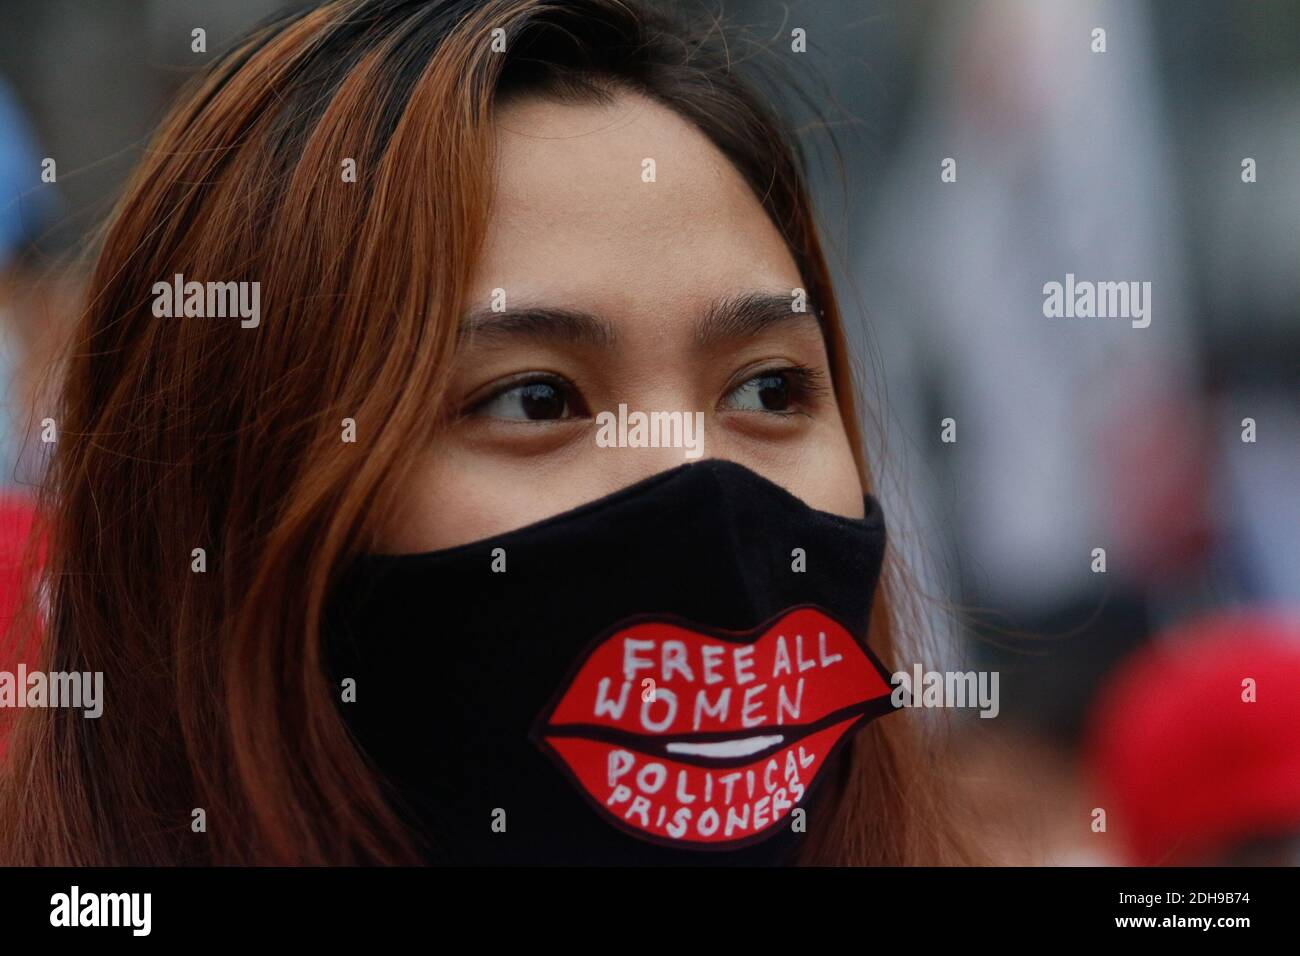 Manila, Philippines. 10th December 2020. Protesters wearing masks and practicing physical distancing hold their placards with different messages during the International Day of Human Rights Rally. The people are calling for the administration of President Rodrigo Duterte to stop the killings and free political prisoners. Credit: Majority World CIC/Alamy Live News Stock Photo